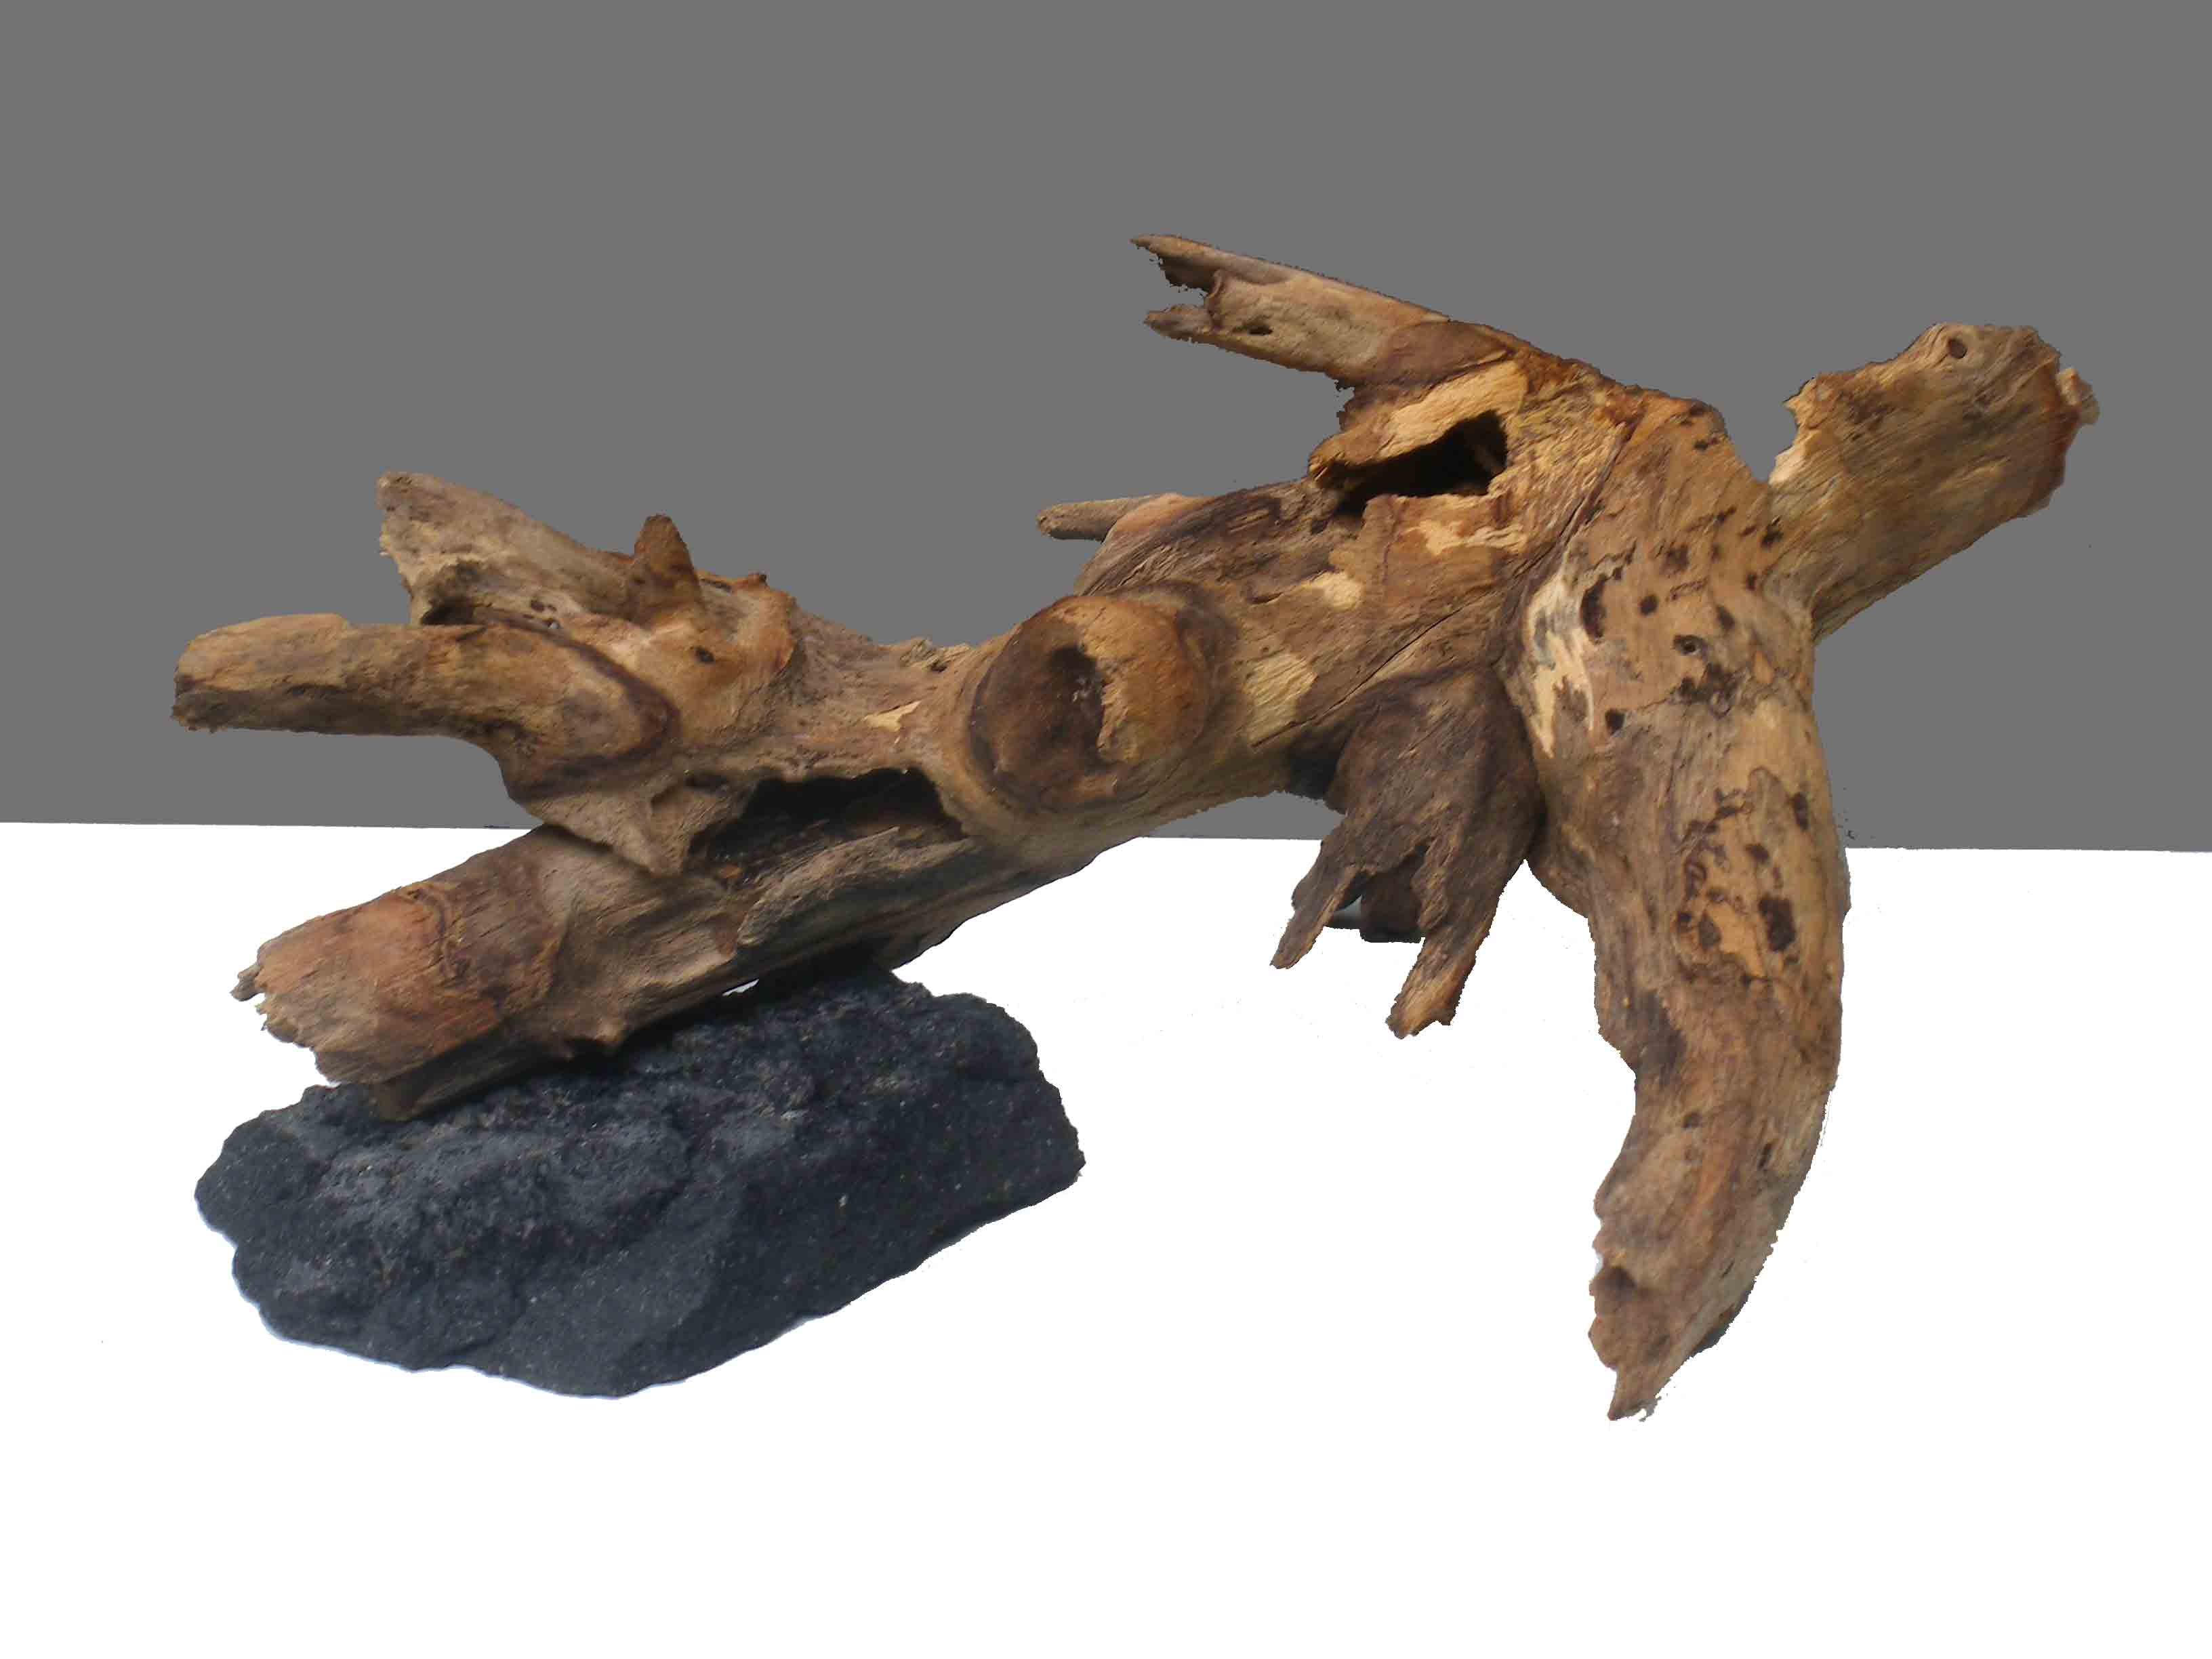 Driftwood on rock